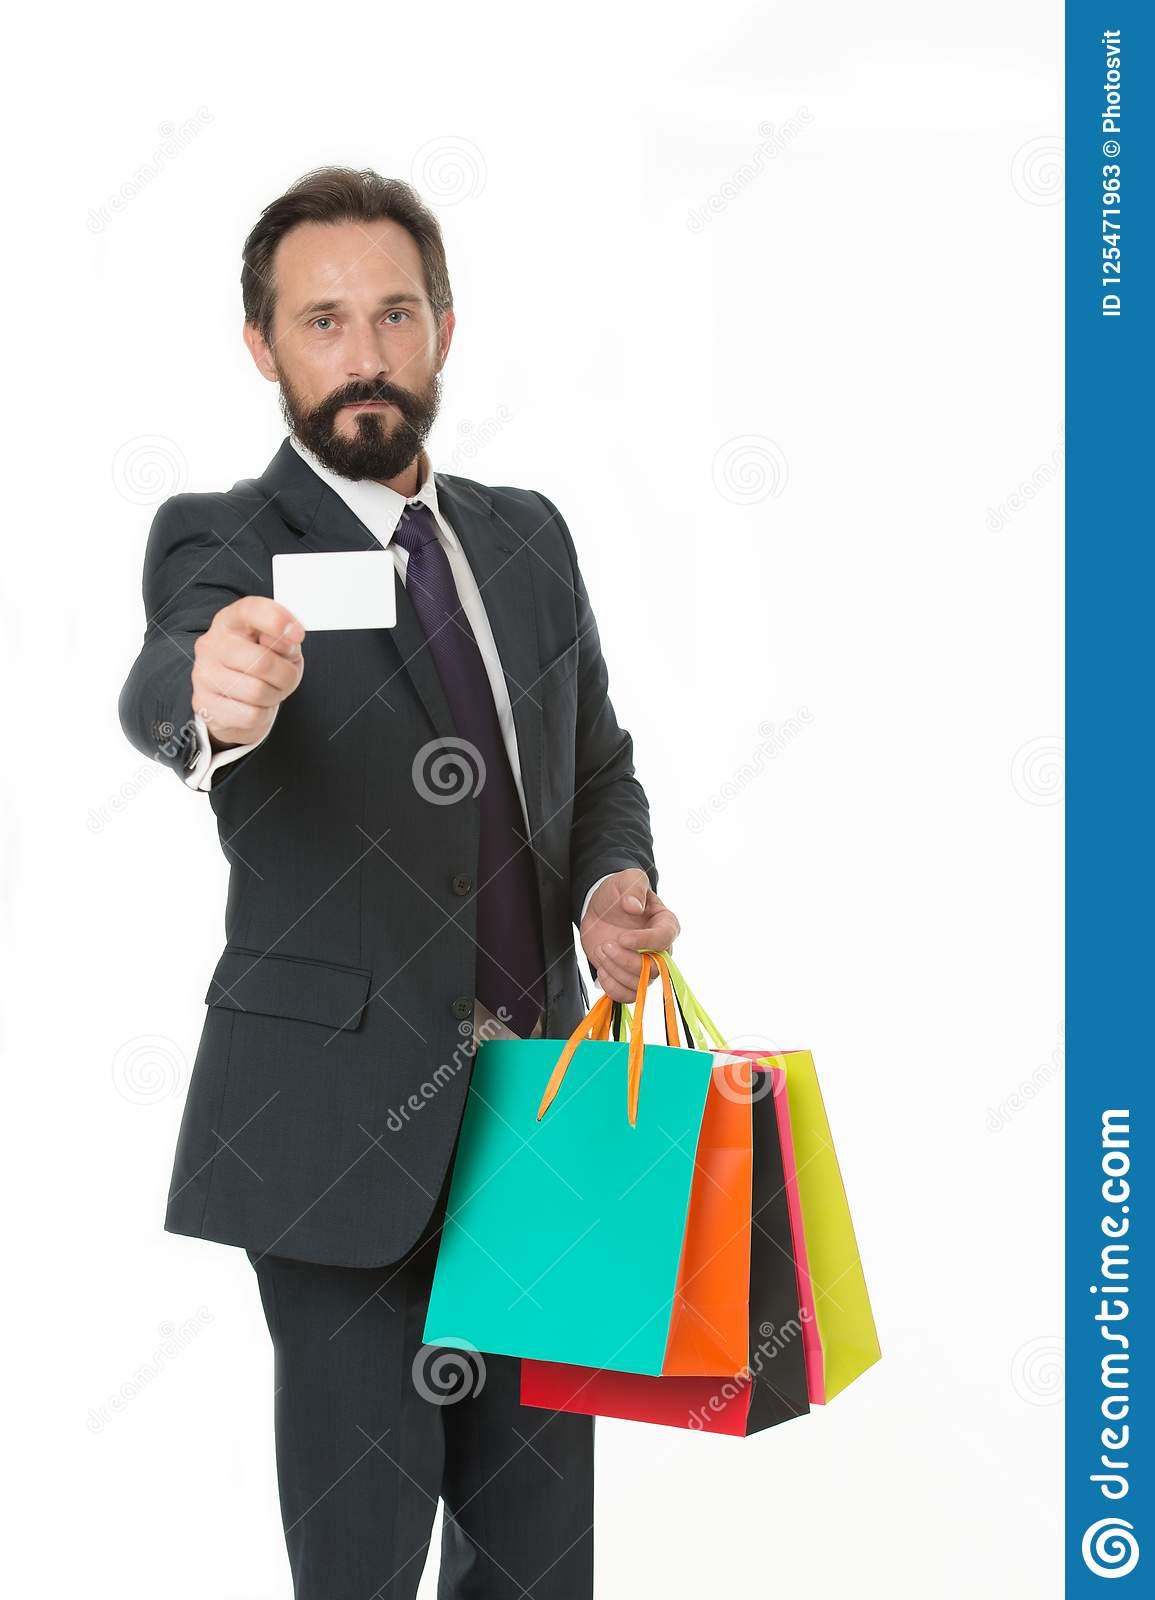 Ask deliver your purchases. Businessman formal suit holds bunch paper bags while show business card. Man bearded